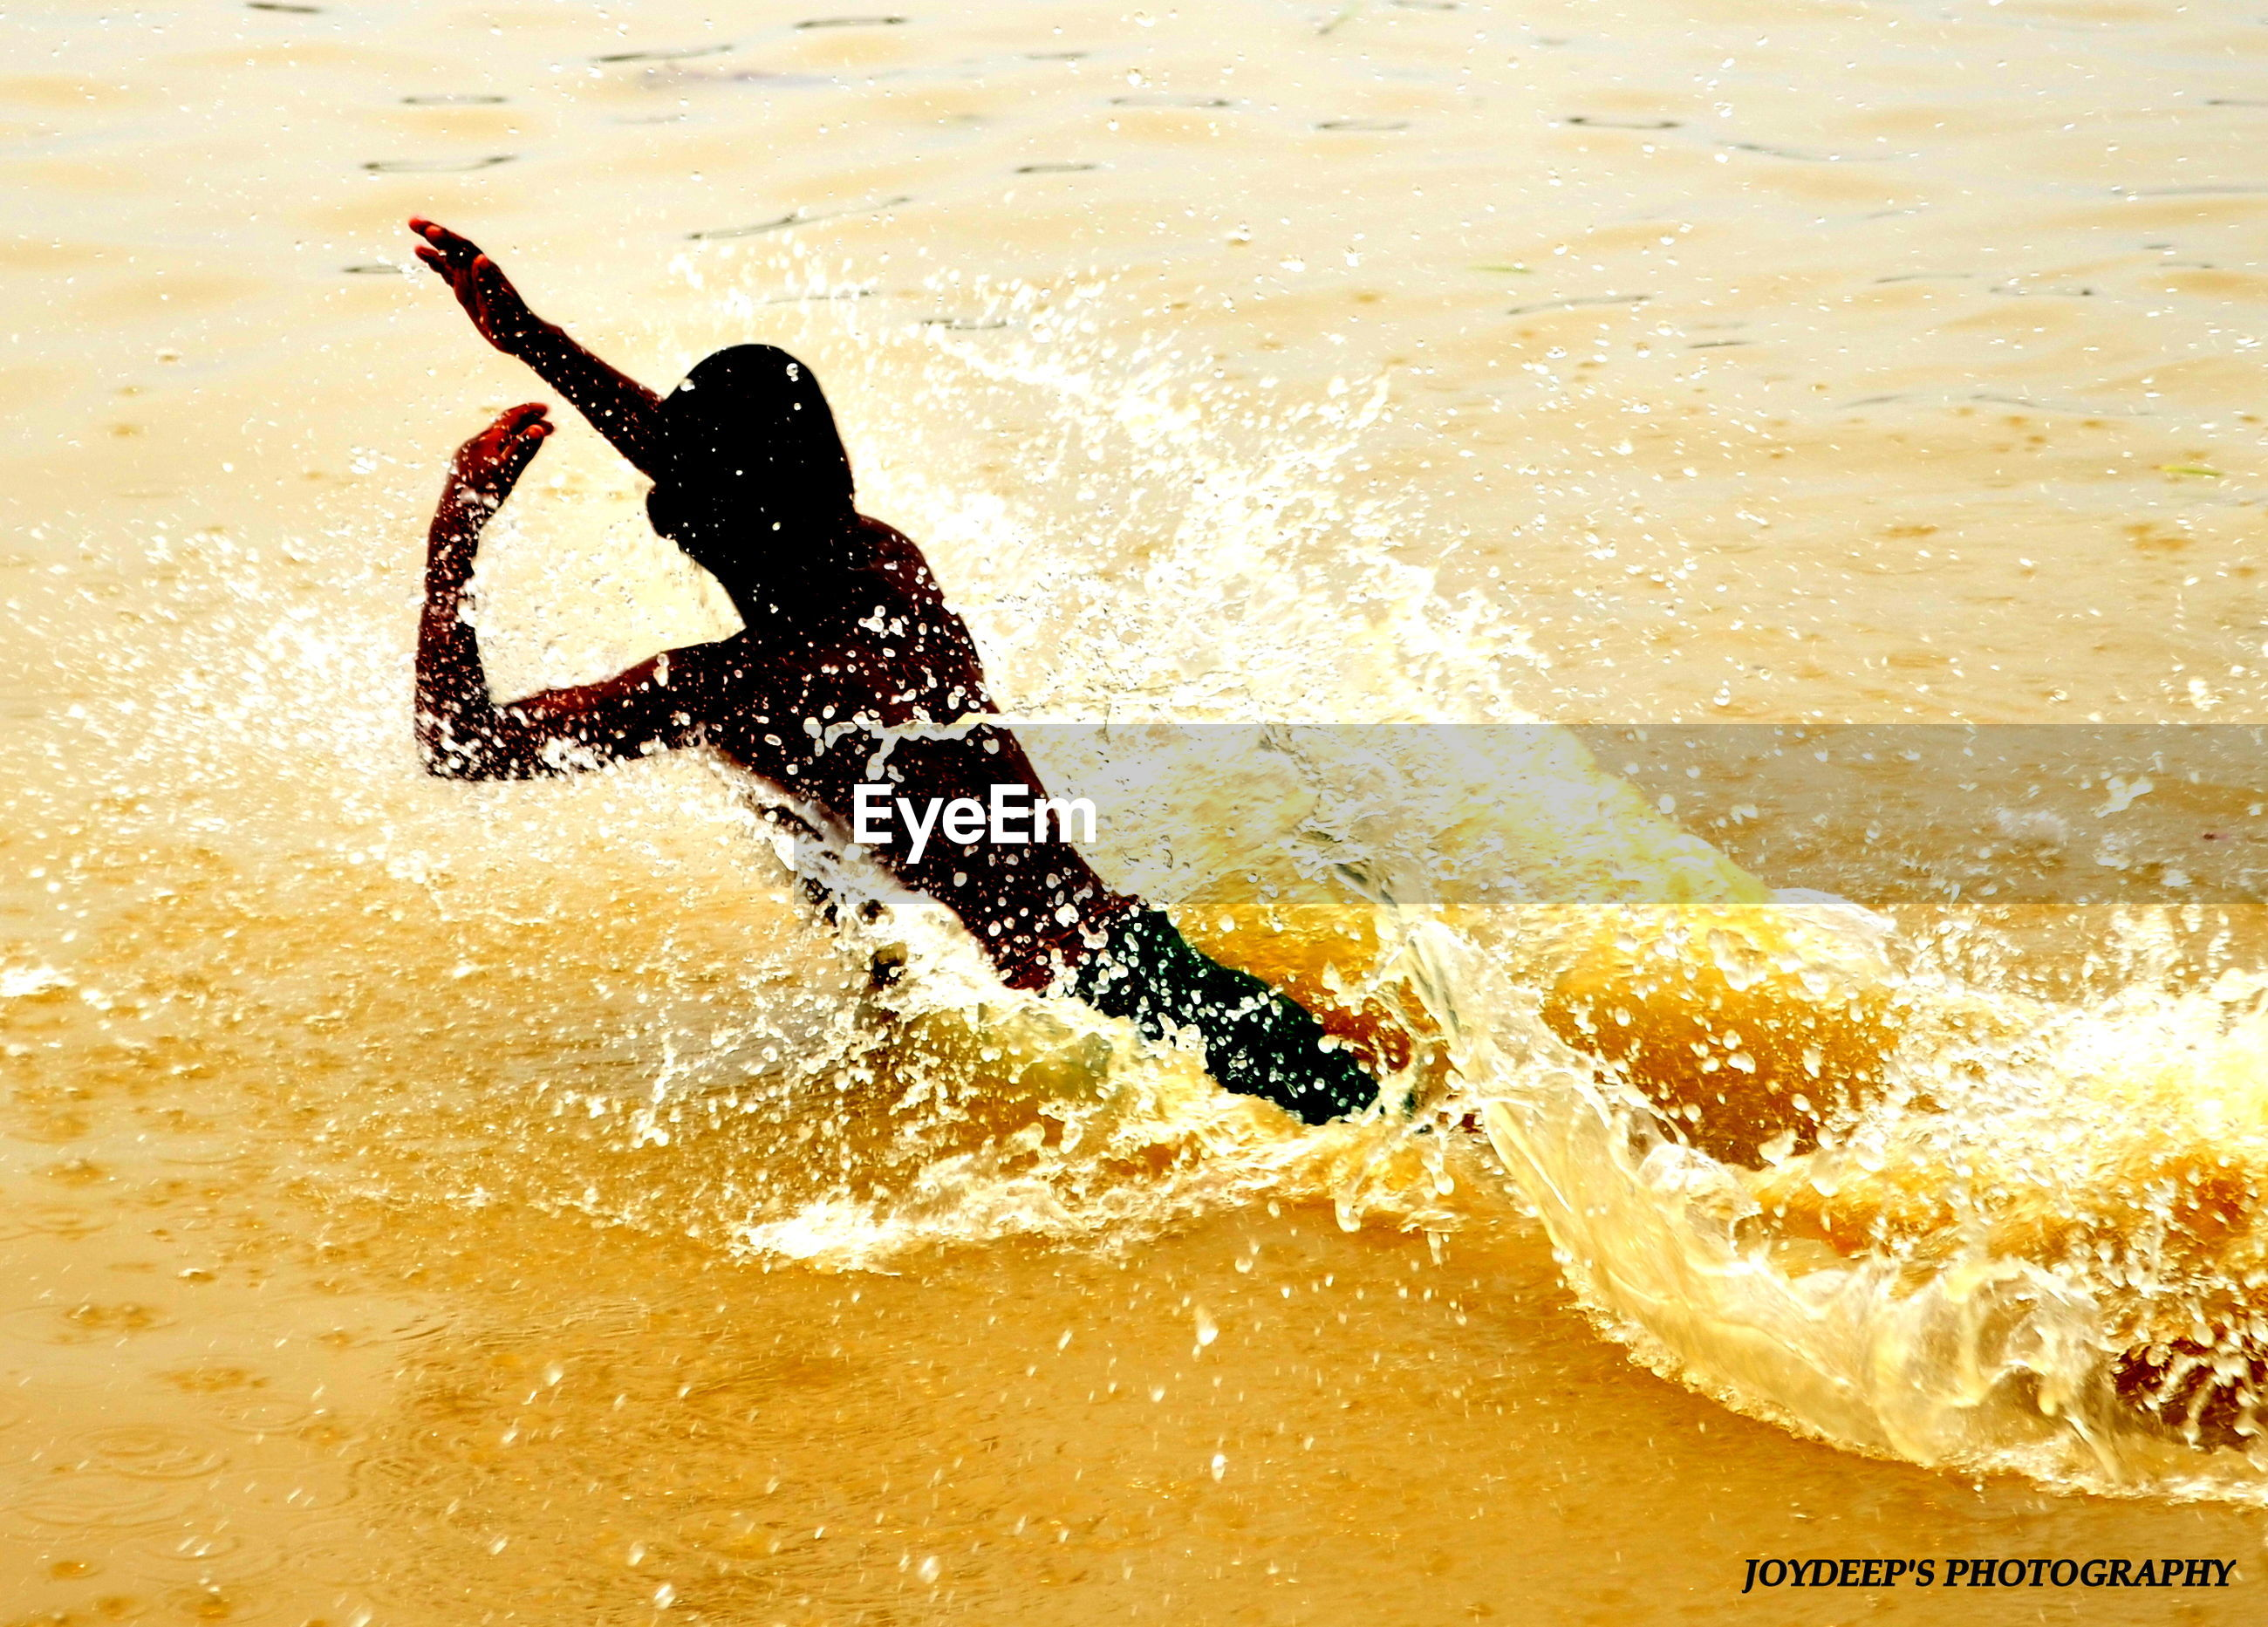 water, lifestyles, leisure activity, beach, sea, sand, men, shore, vacations, wave, surf, refreshment, person, surfboard, high angle view, sunlight, unrecognizable person, holding